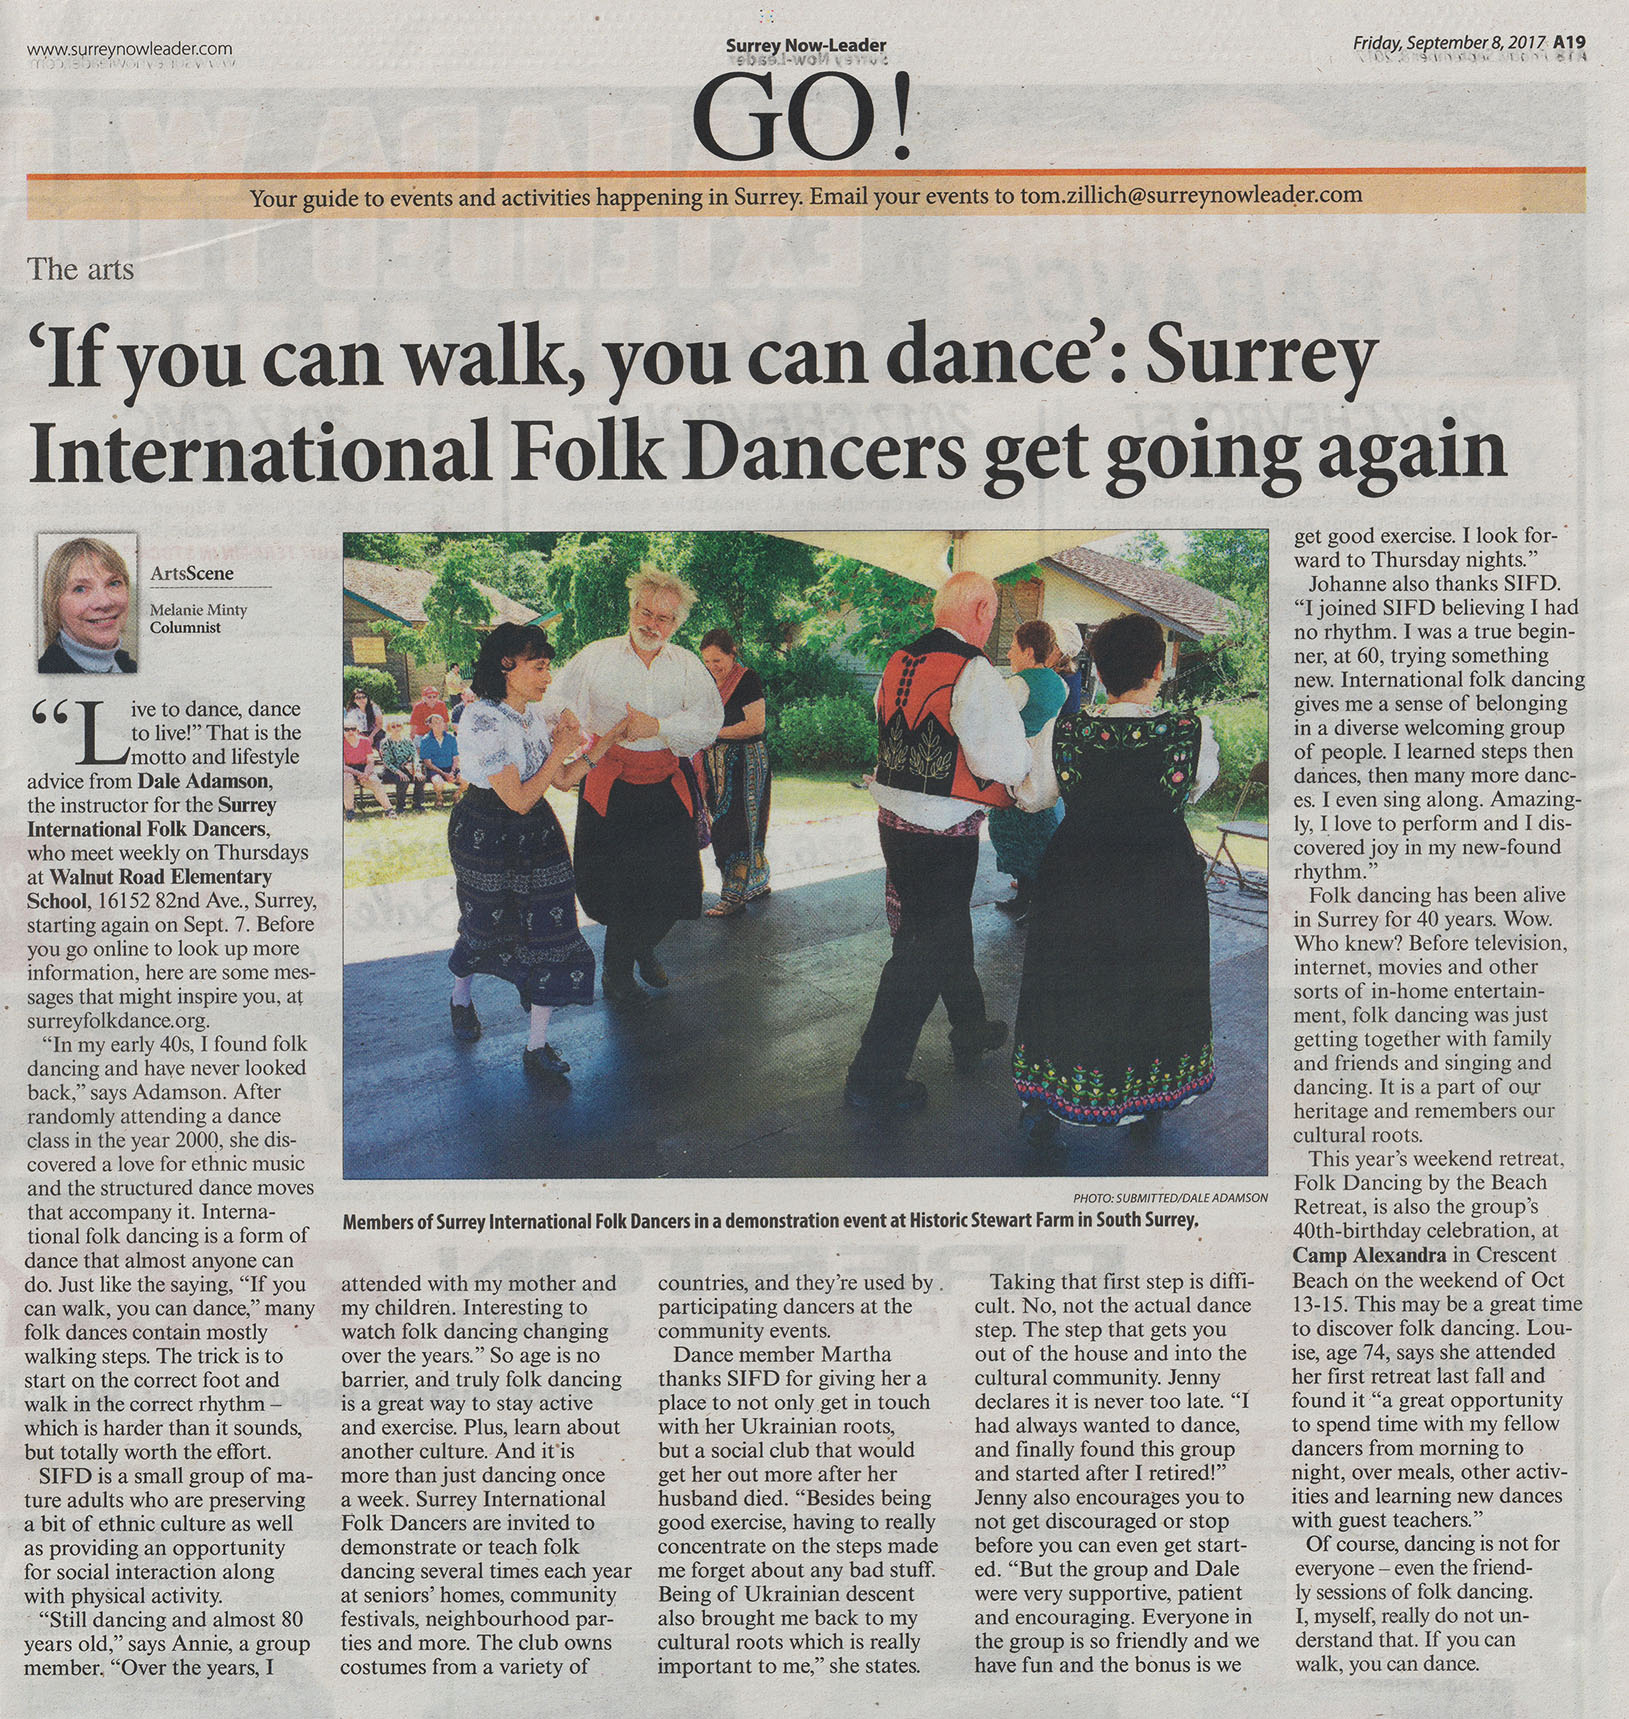 ArtsScene Column by Melanie Minty in Surrey Now-Leader 2017-09-08